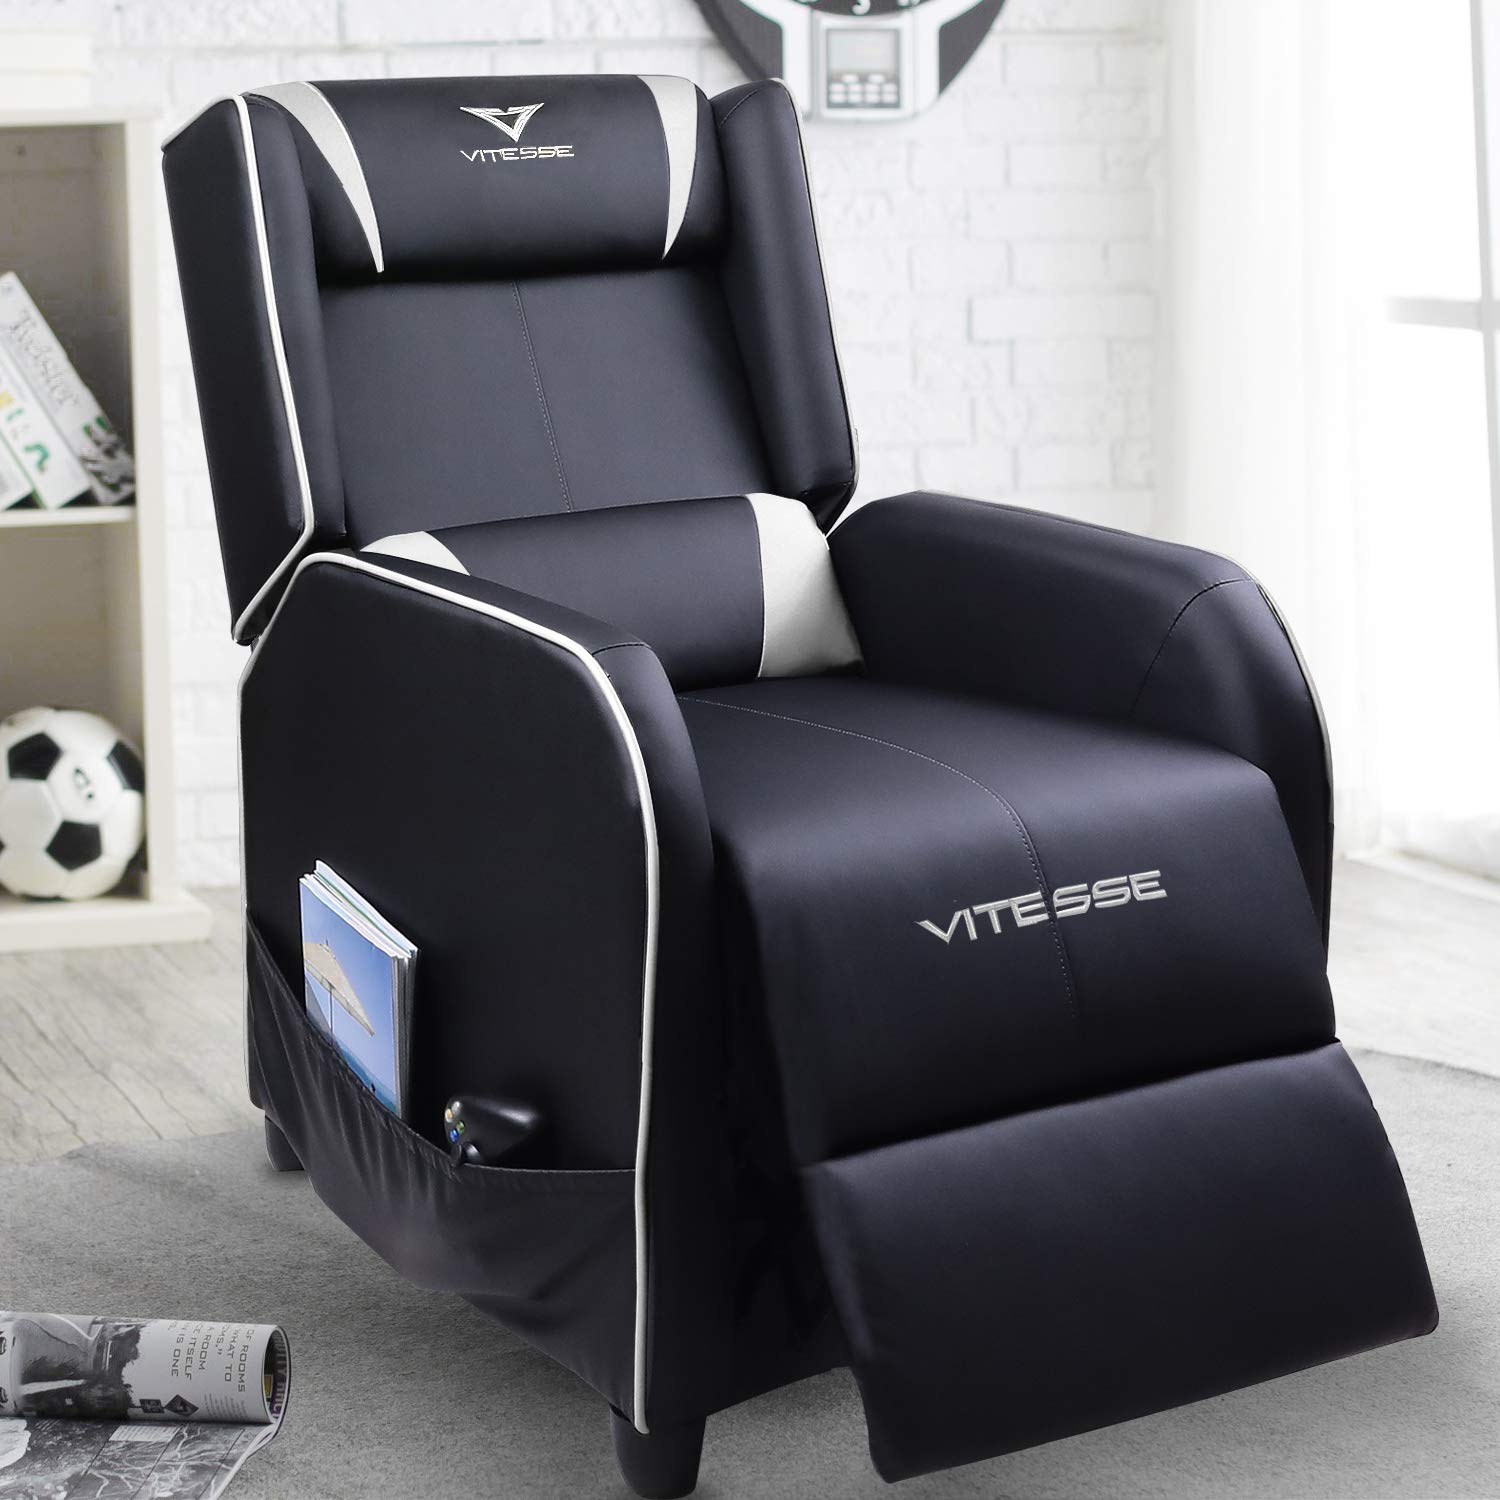 VIT Gaming Recliner Chair Racing Style Single PU Leather Sofa Modern Living Room Recliners Ergonomic Comfortable Home Theater Seating (White) by Vitesse